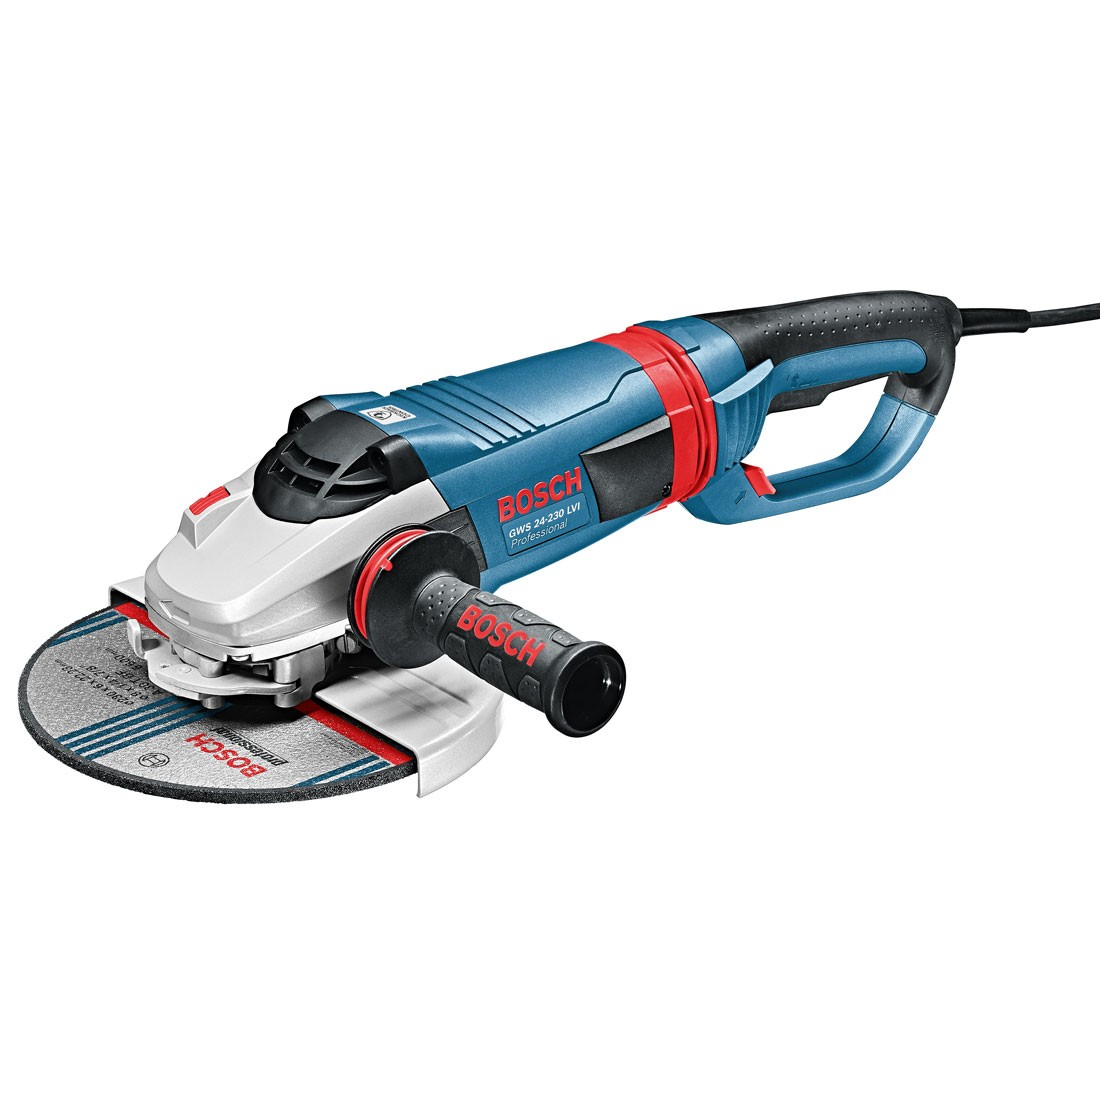 Bosch GWS 24-230 LVI Angle Grinder with Vibration Control Handle 230mm / 9""